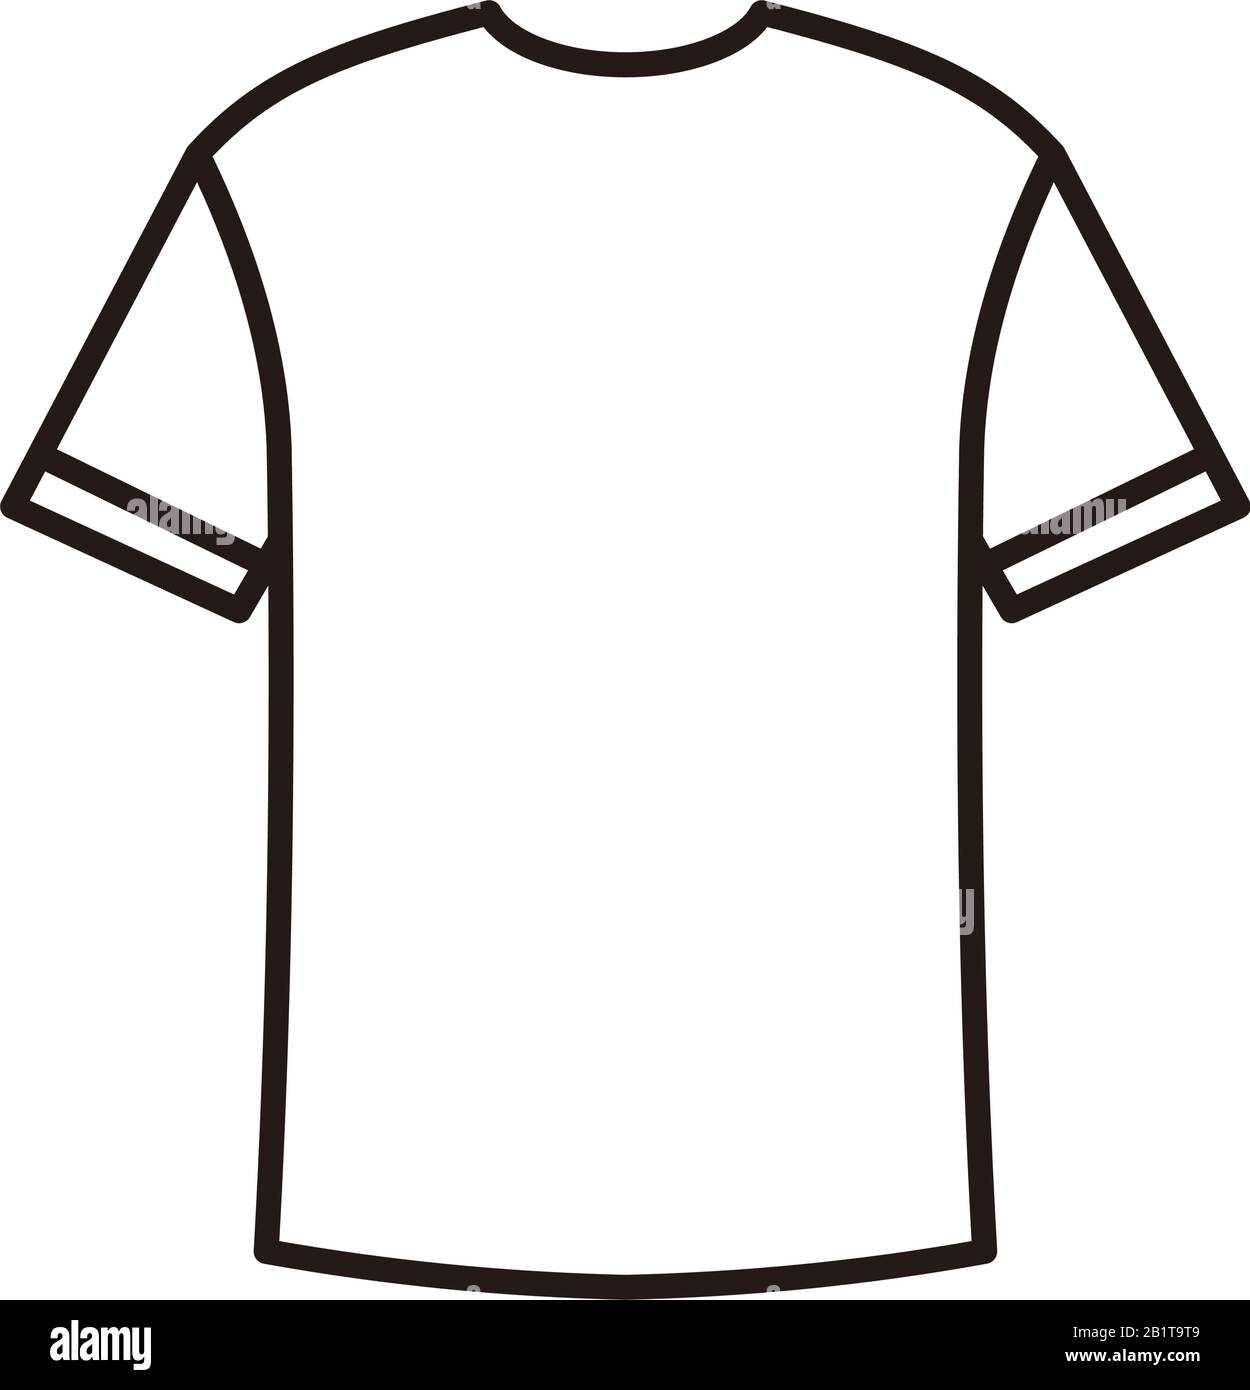 front and back t shirt icon vector illustration for graphic and web design stock vector image art alamy https www alamy com front and back t shirt icon vector illustration for graphic and web design image345356601 html